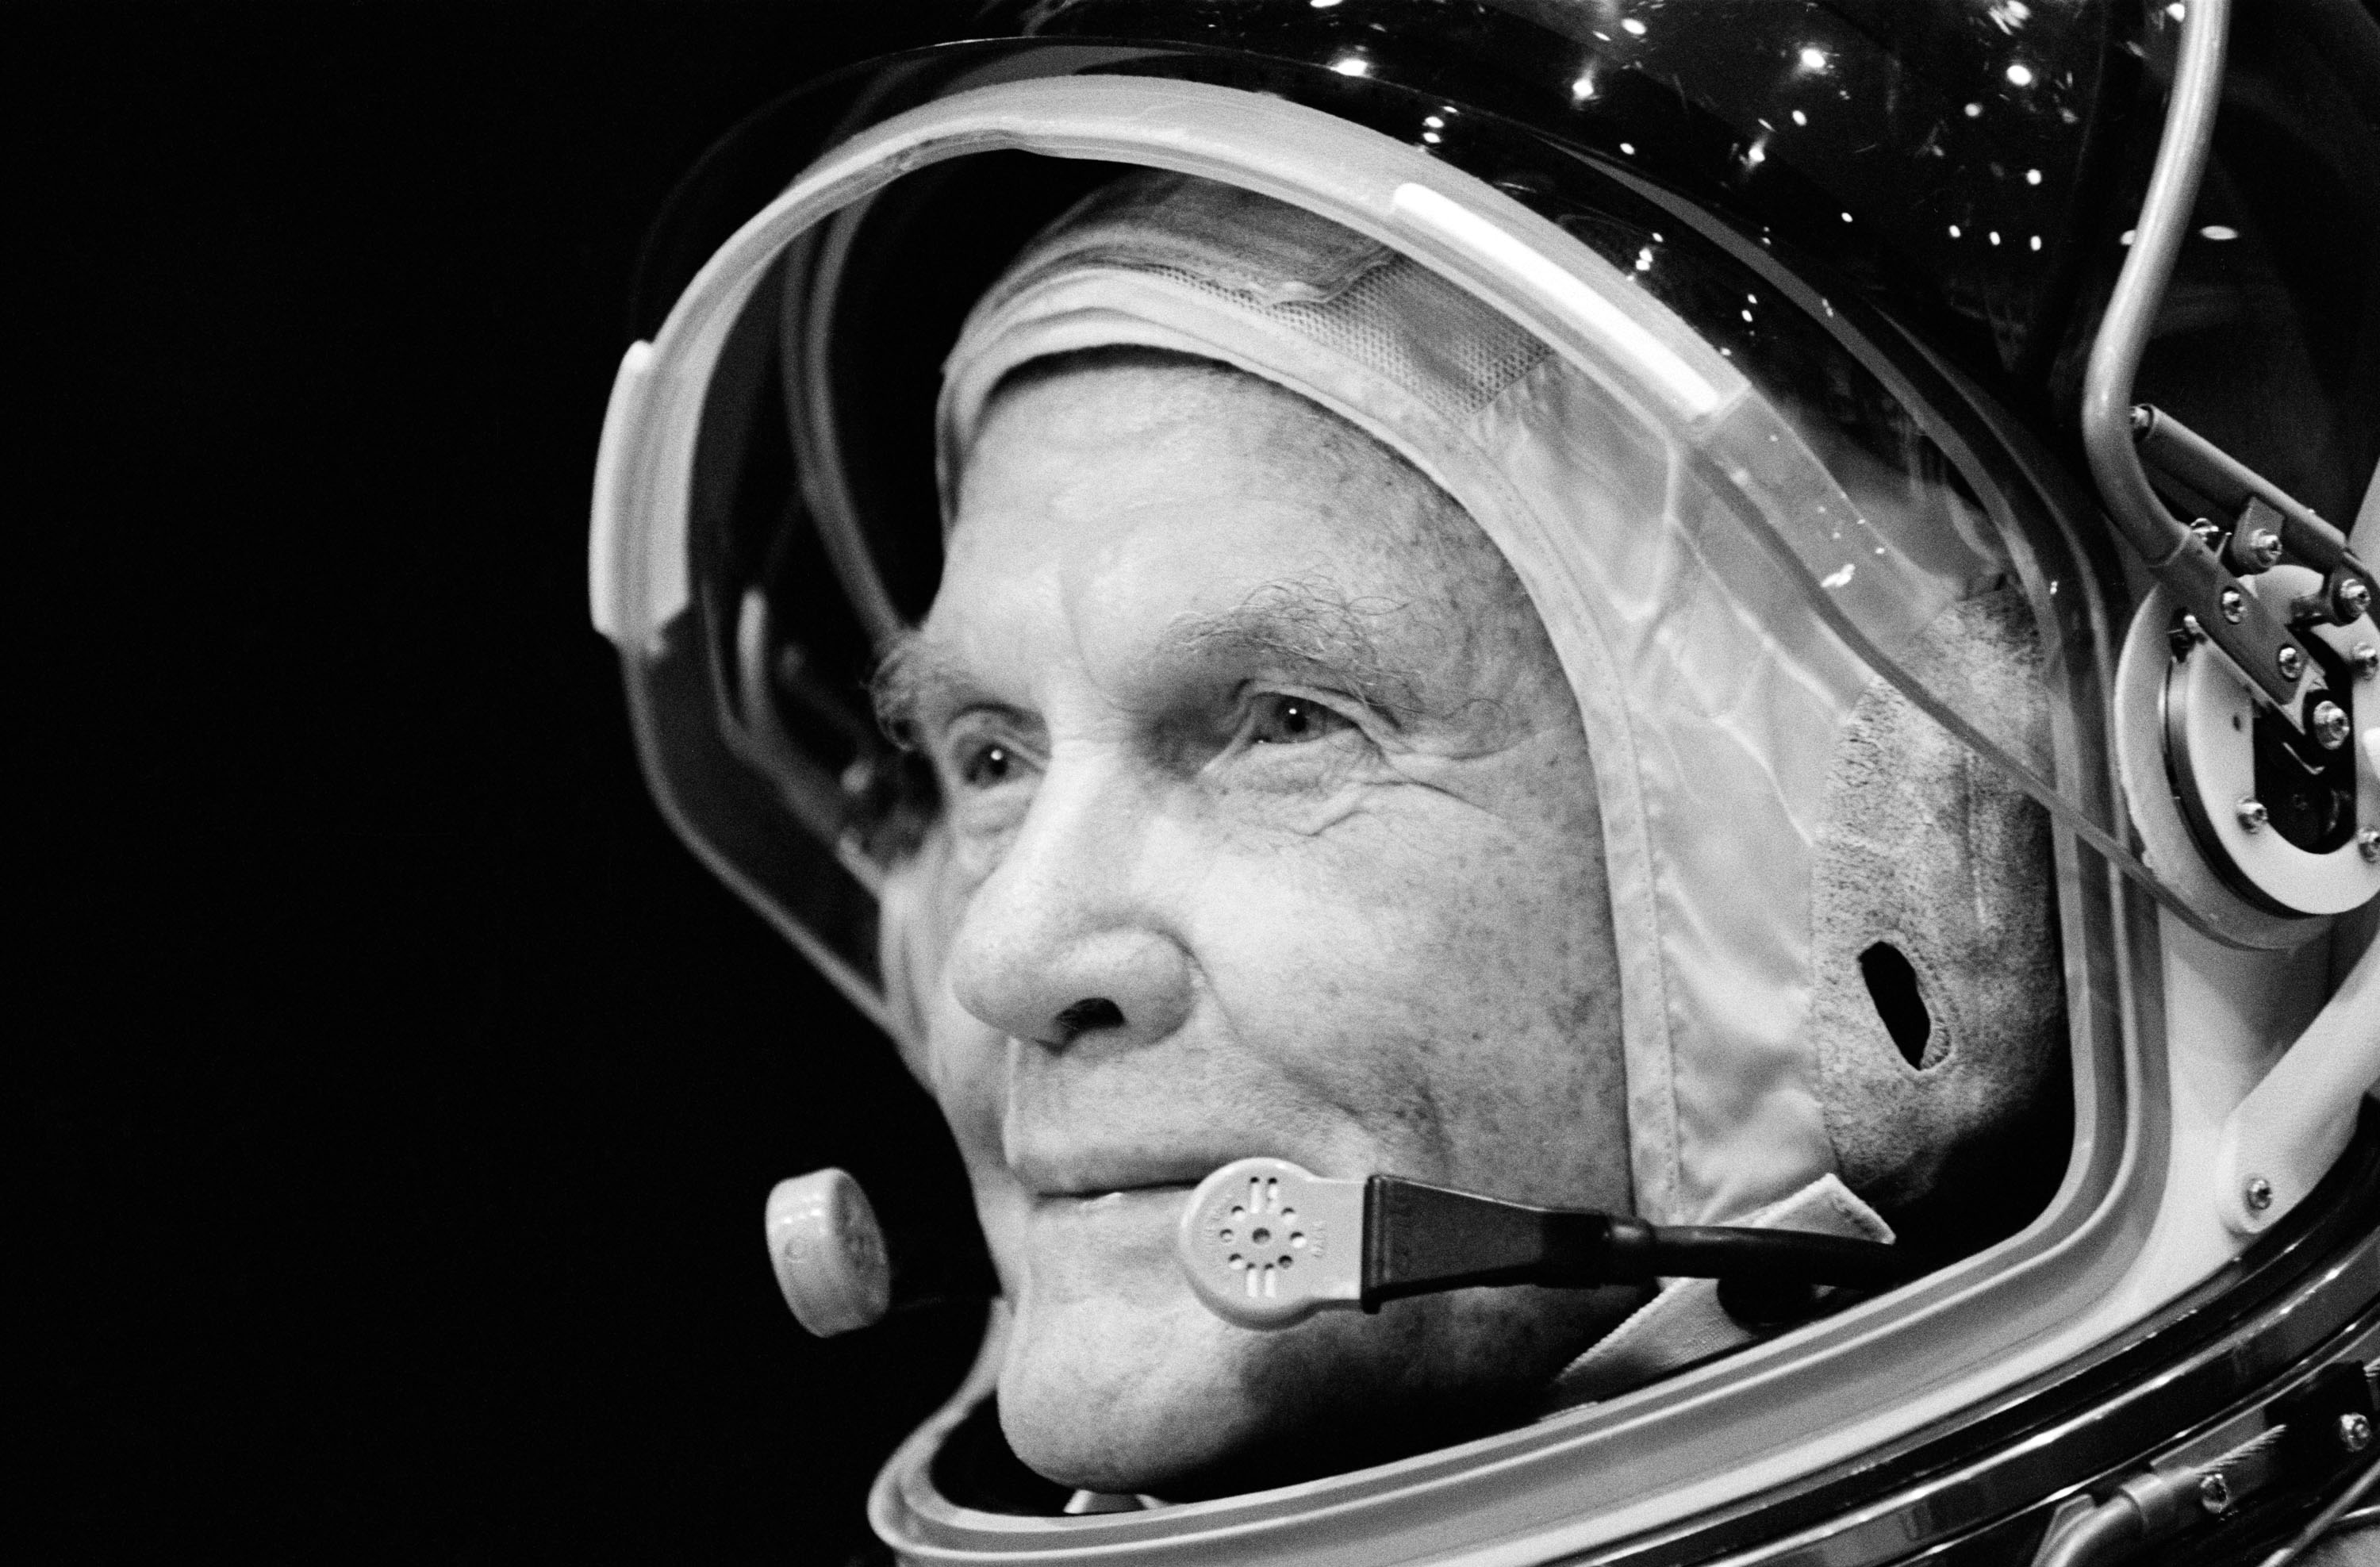 Astronaut John Glenn trains at the Johnson Space Center on Aug. 28, 1998 in Houston, Texas.